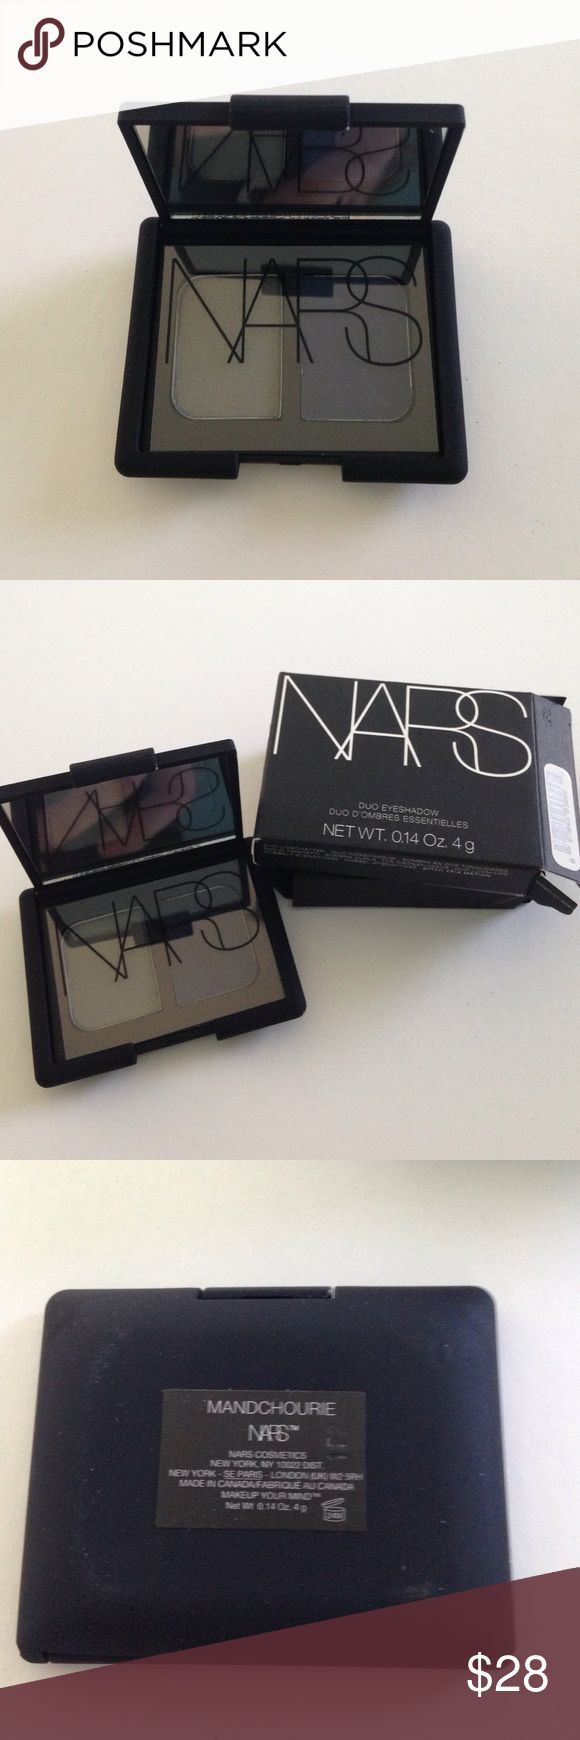 Brand New Authentic NARS Eyeshadow Duo Mandchourie 🛍Holiday Sale🛍 Brand New Authentic NARS Eyeshadow Duo Mandchourie in original packaging. Never swatched. No trades. NARS Makeup Eyeshadow